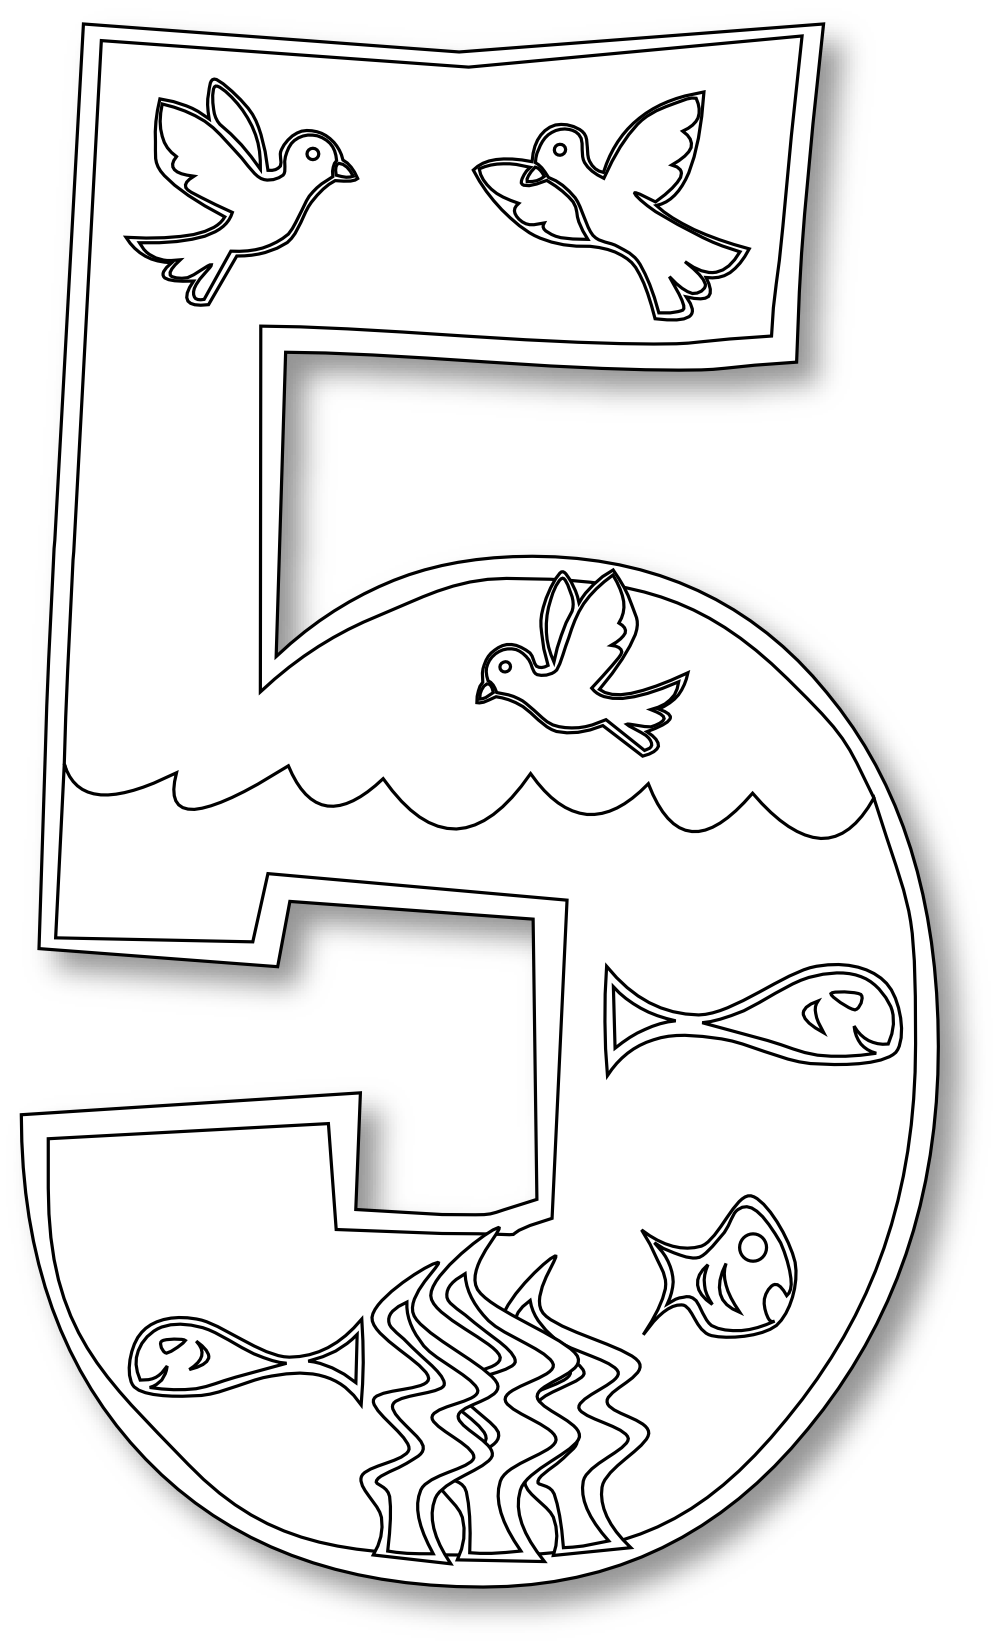 Coloring Pages for children is